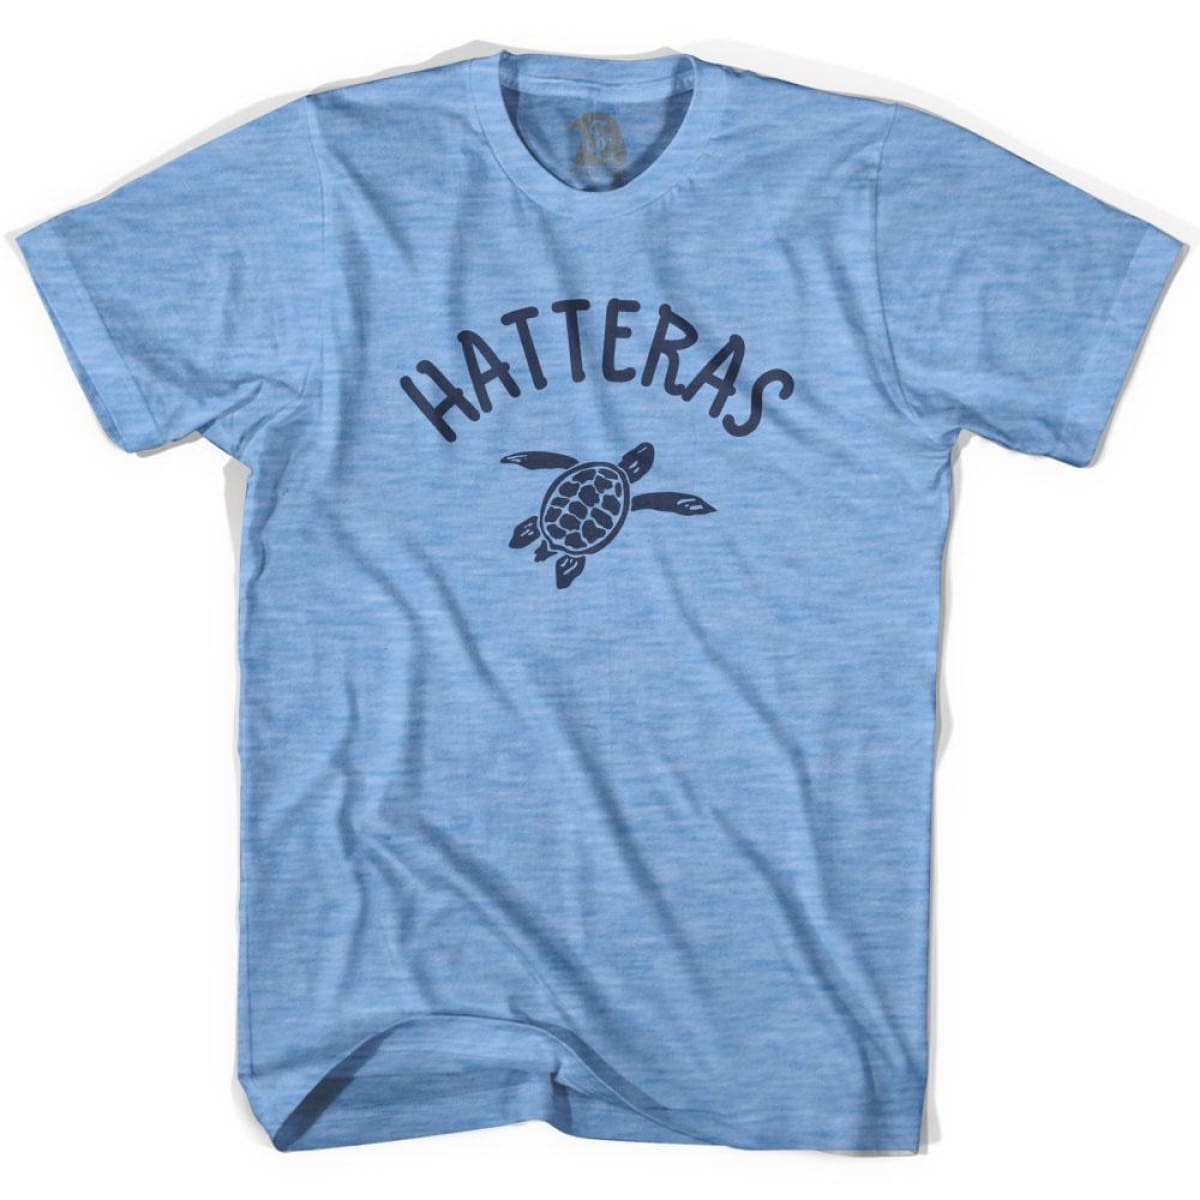 Hatteras Beach Sea Turtle Adult Tri-Blend T-shirt - Athletic Blue / Adult Small - Turtle T-shirts